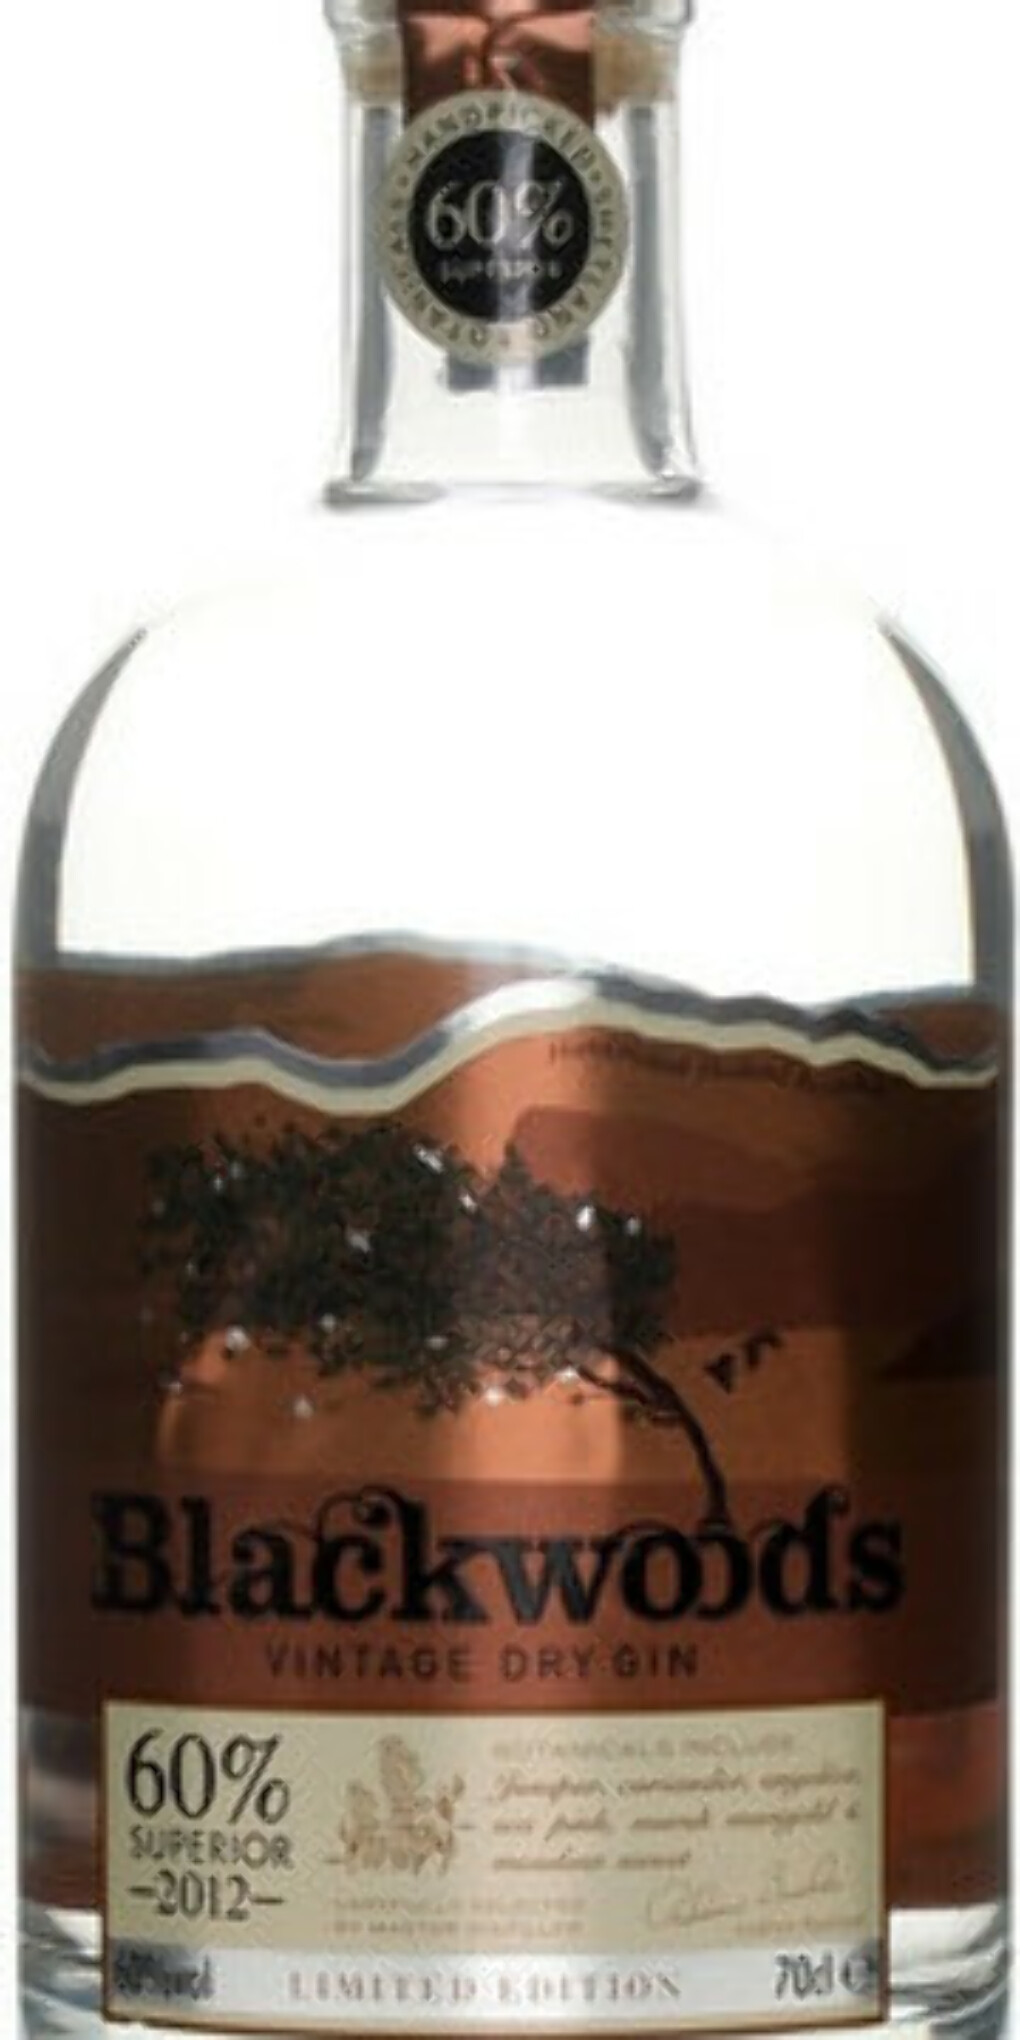 """Blackwoods"" Vintage Dry Gin 60% Limited Edition, 2012, 0.7 л"